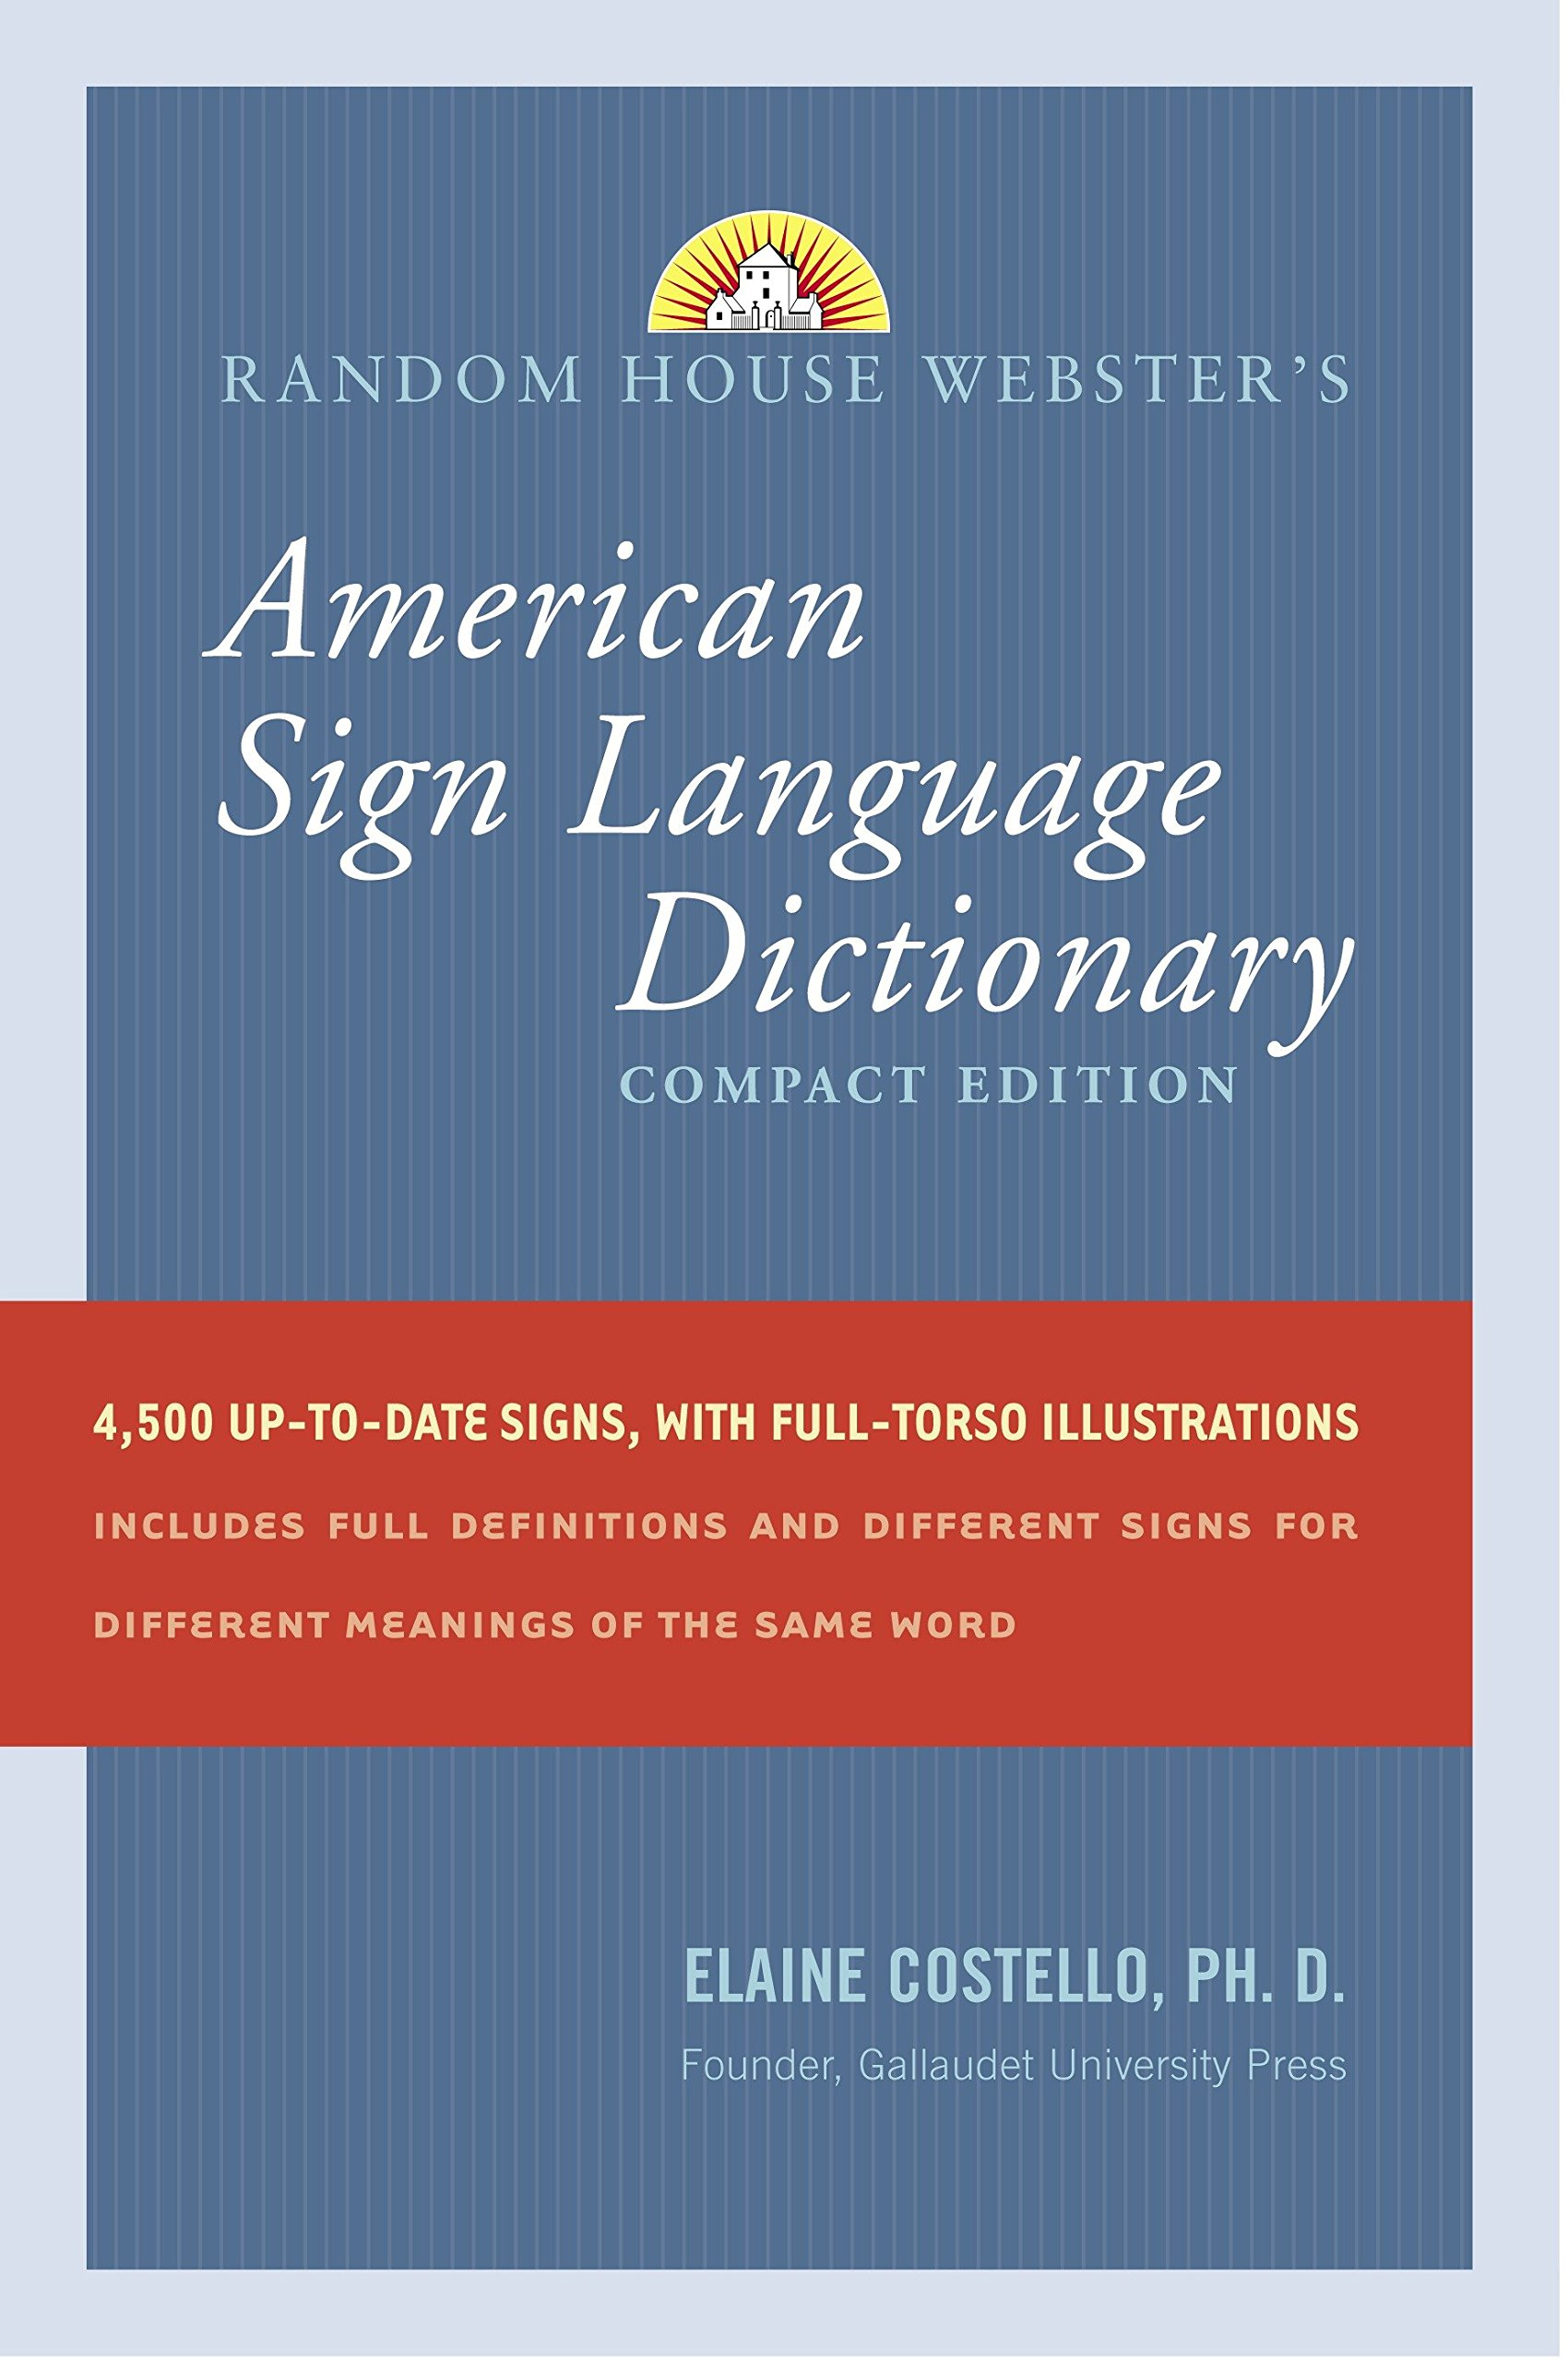 Random House Webster's Compact American Sign Language Dictionary by Costello, Elaine Phd